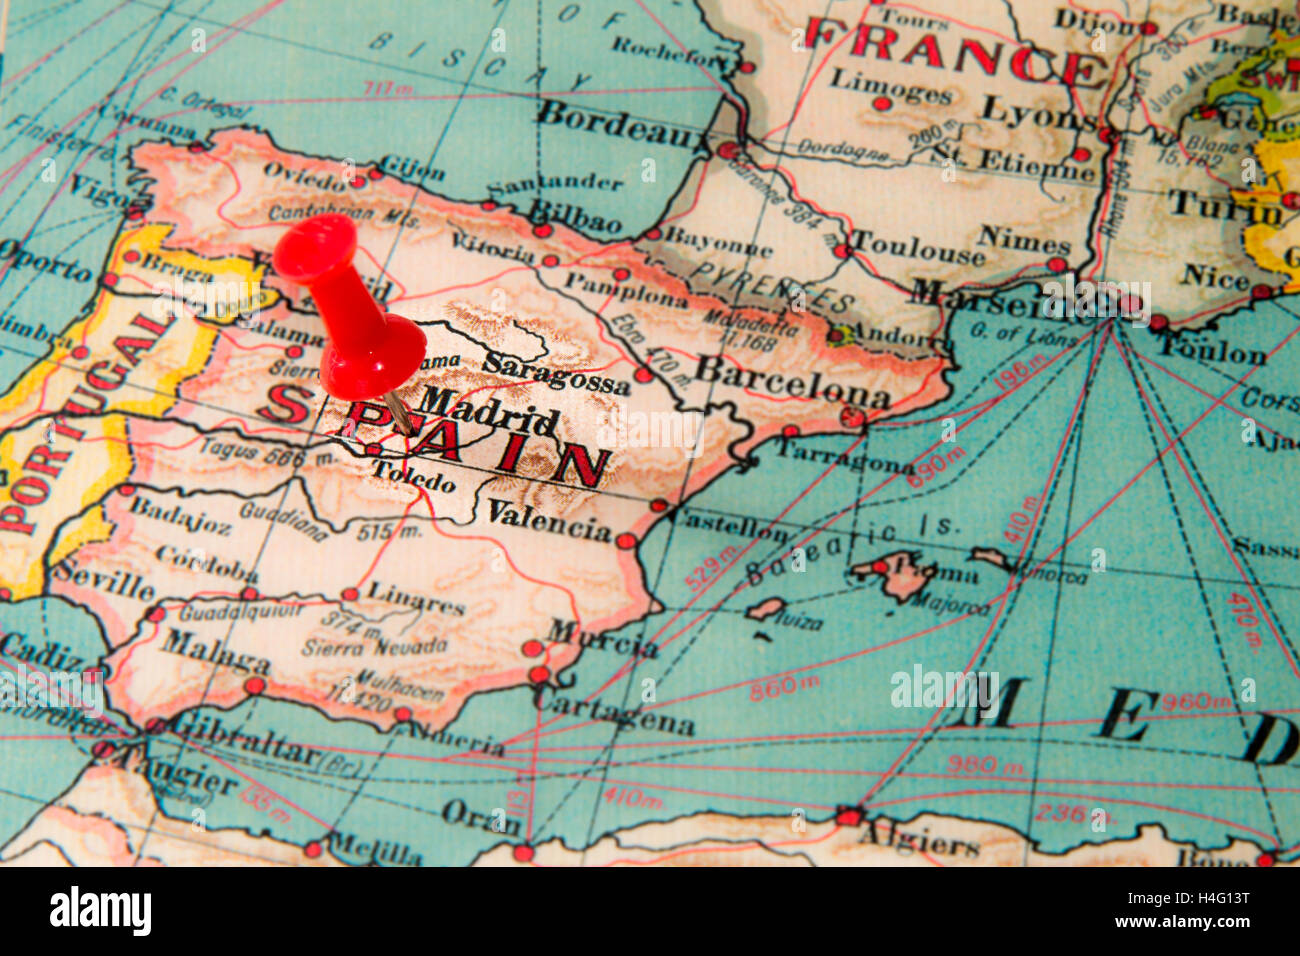 Map Of Spain With Madrid.Pin Map Madrid Spain Stock Photos Pin Map Madrid Spain Stock